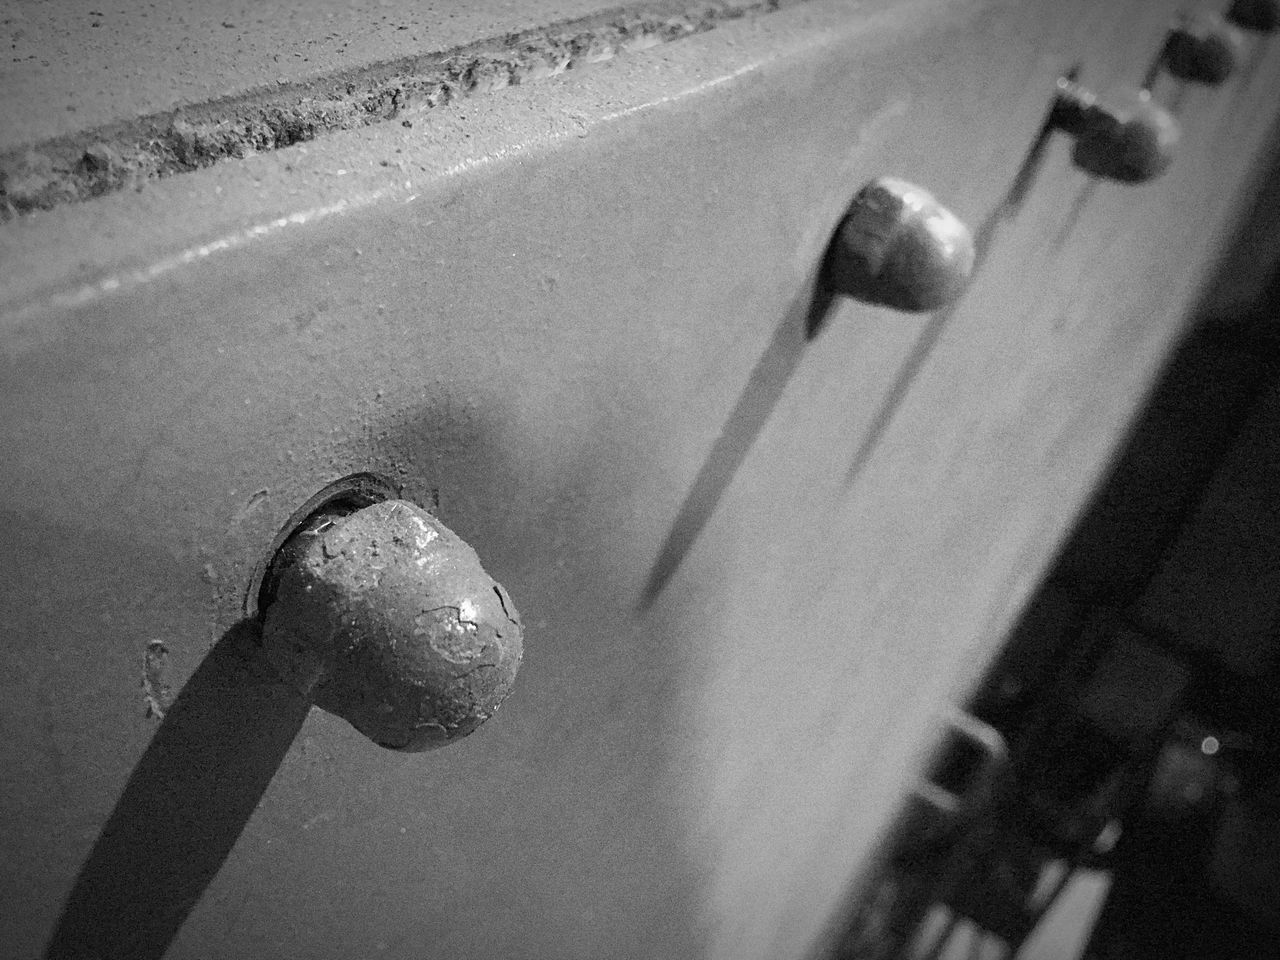 Close-up Water Drop Domestic Bathroom Faucet No People Indoors  Bathroom Hygiene Nature Day Nuts And Bolts Nut